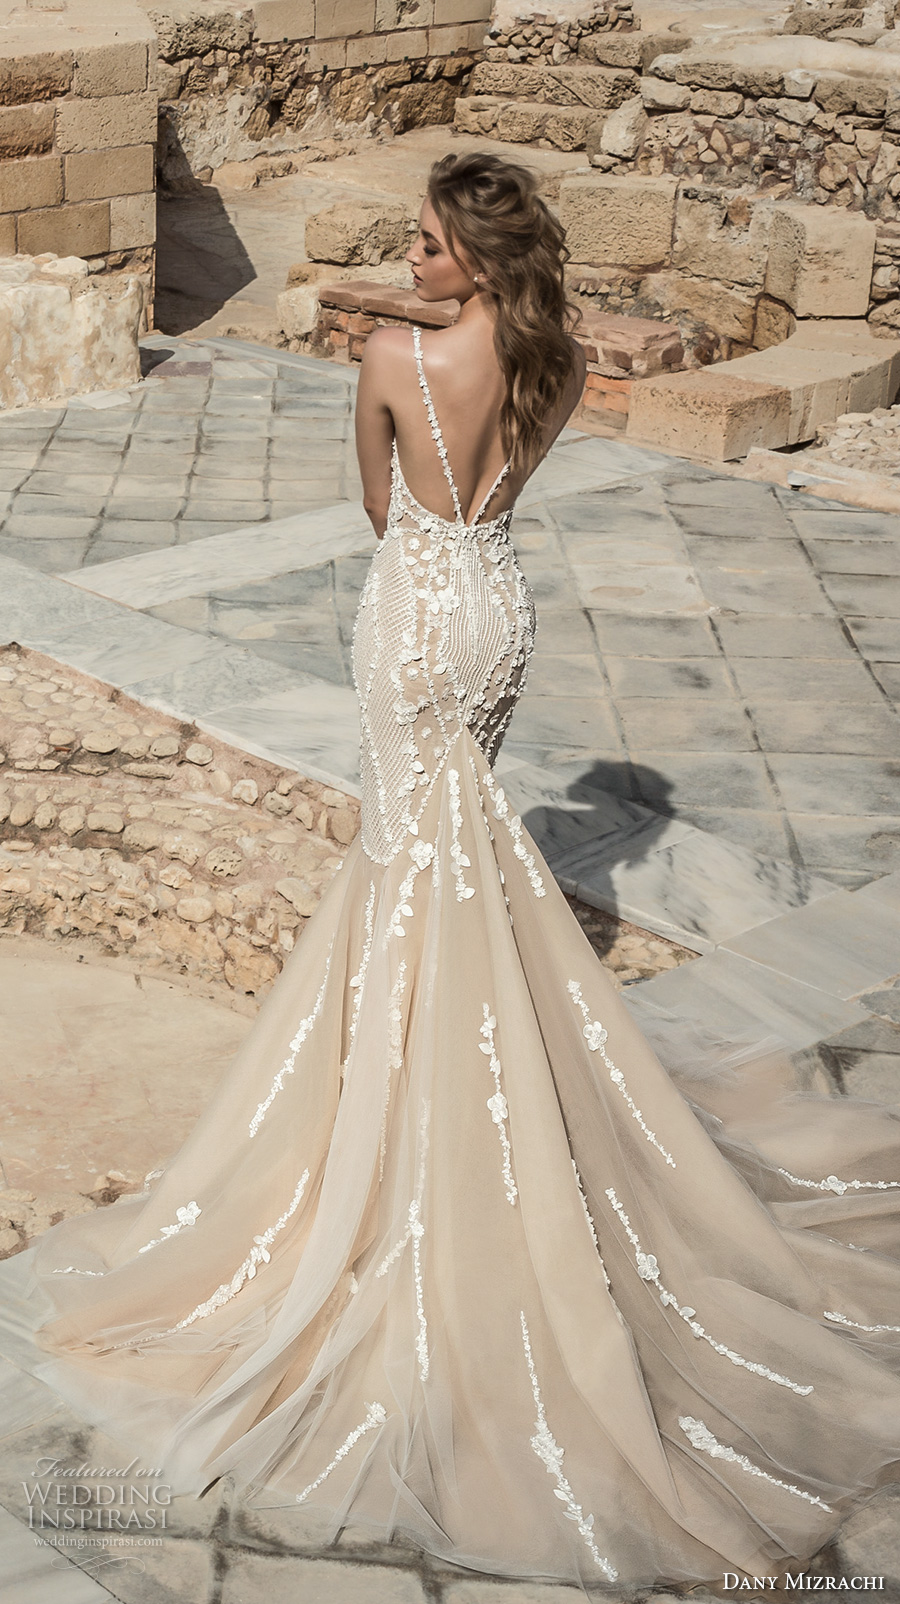 dany mizrachi 2018 bridal sleeveless halter neck deep plunging sweetheart neckline heavily embellished bodice elegant champagne color mermaid wedding dress open back chapel train (11) bv